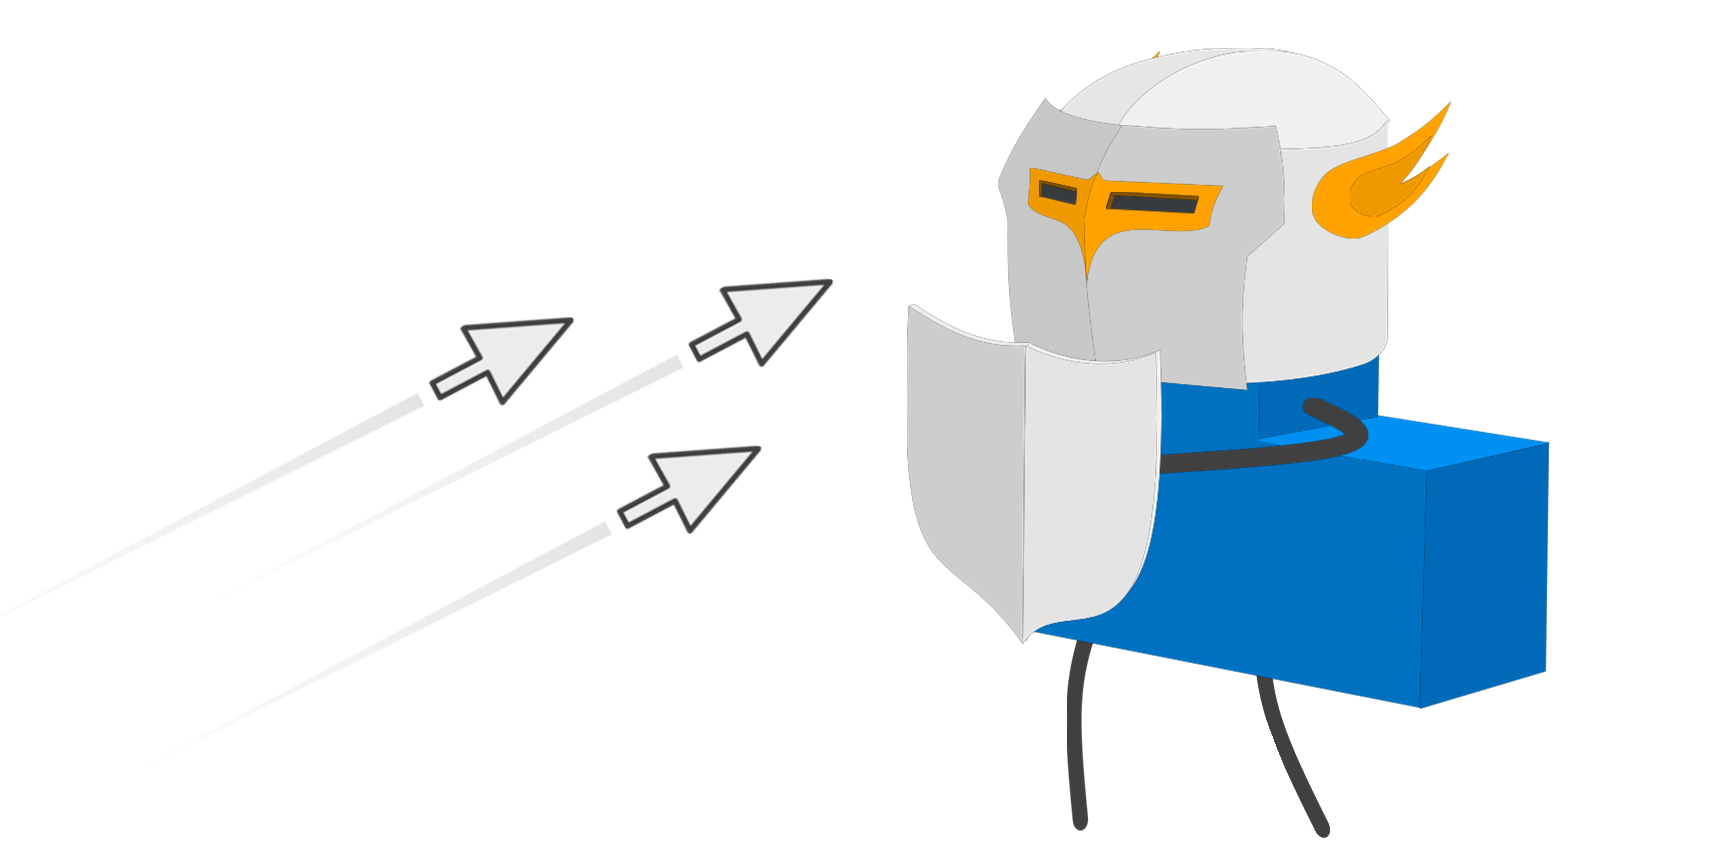 The letter L, dressed as a knight in shining armor, fends off clicking mouse cursors.